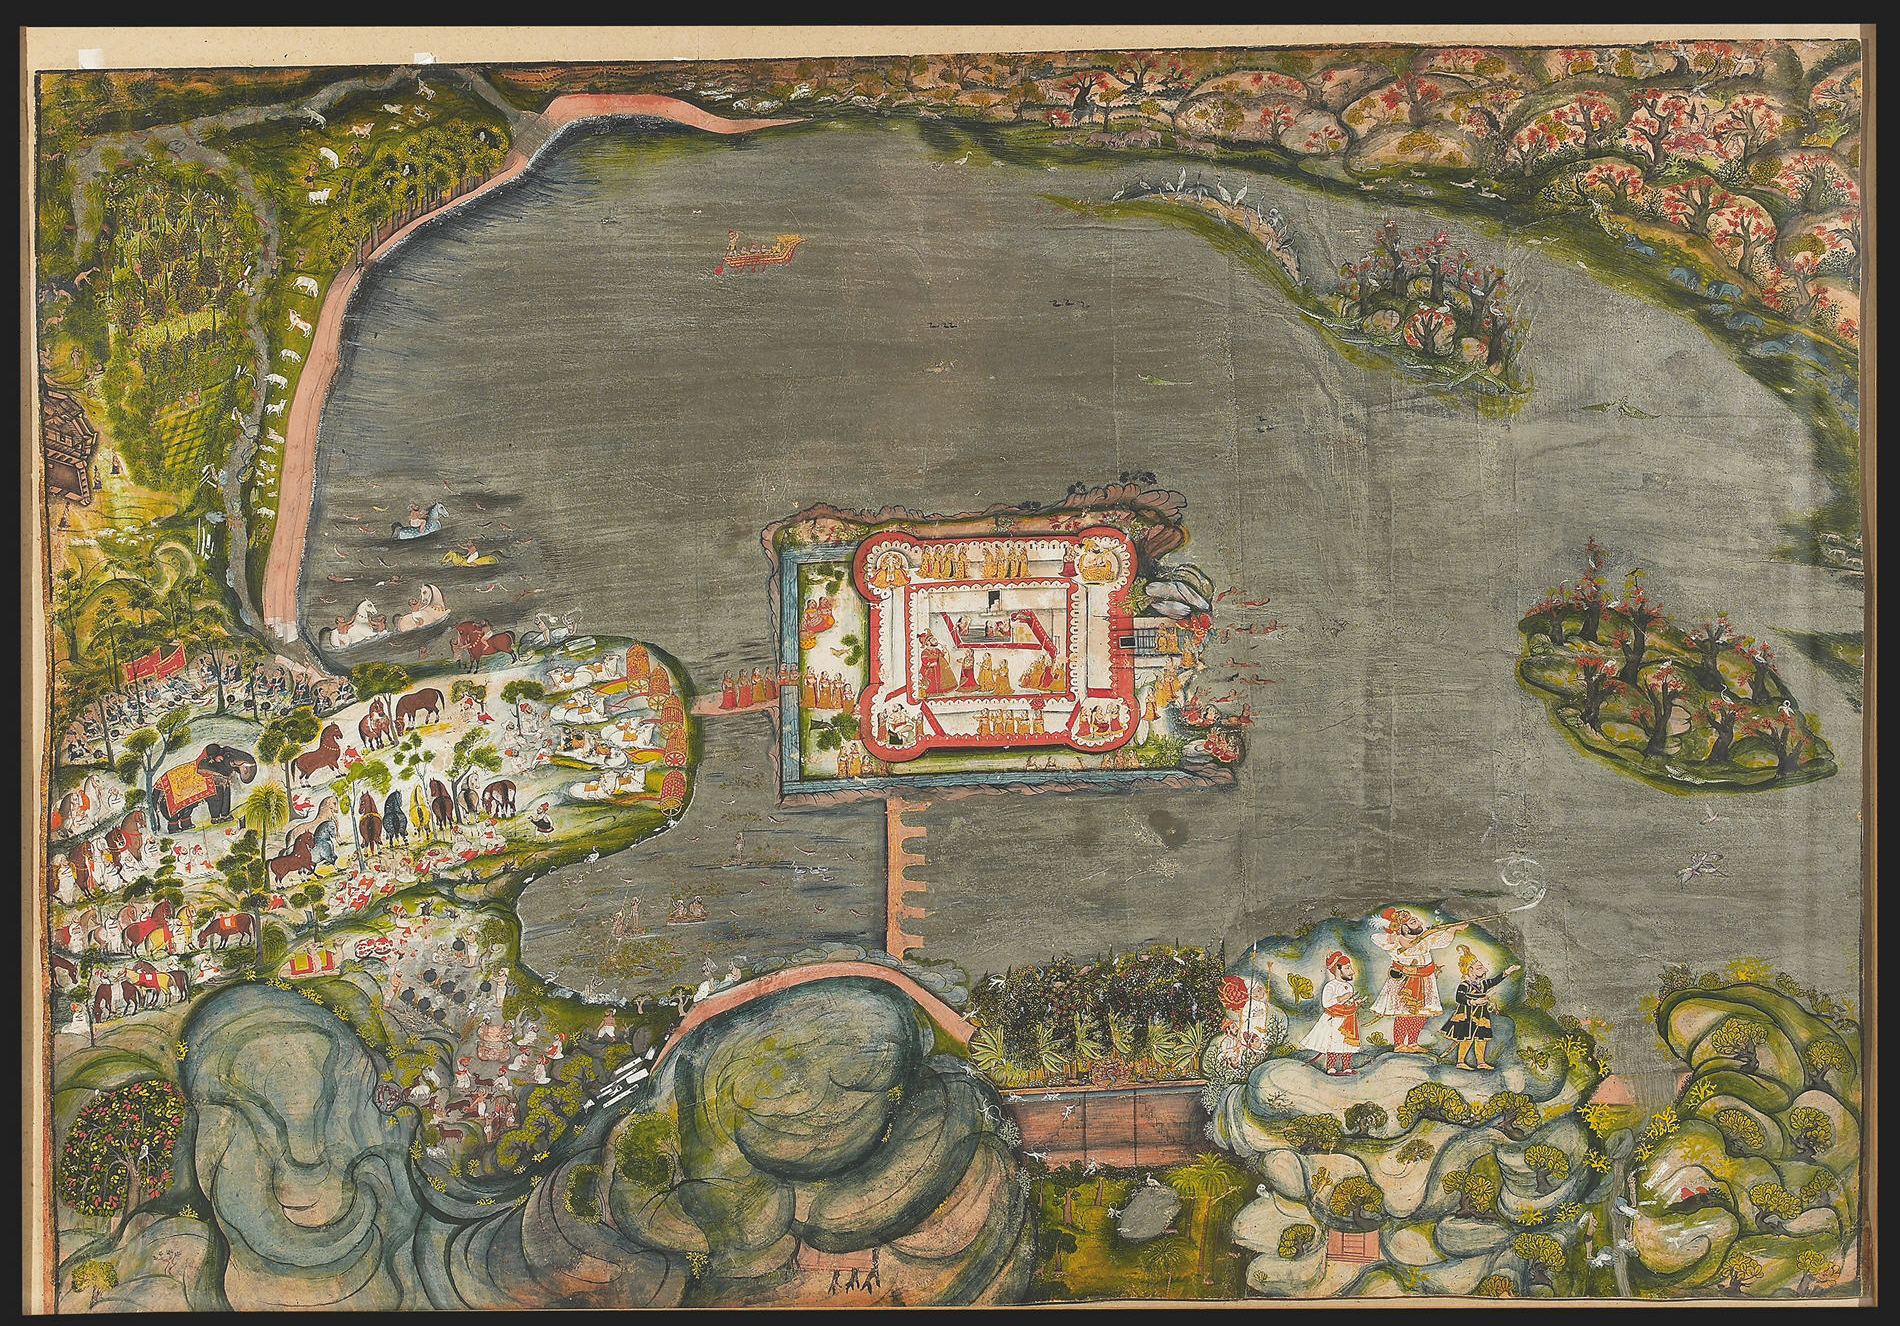 Aerial view painting by Bagta of Rawat Gokul Das at Singh Sagar, Devgarh.